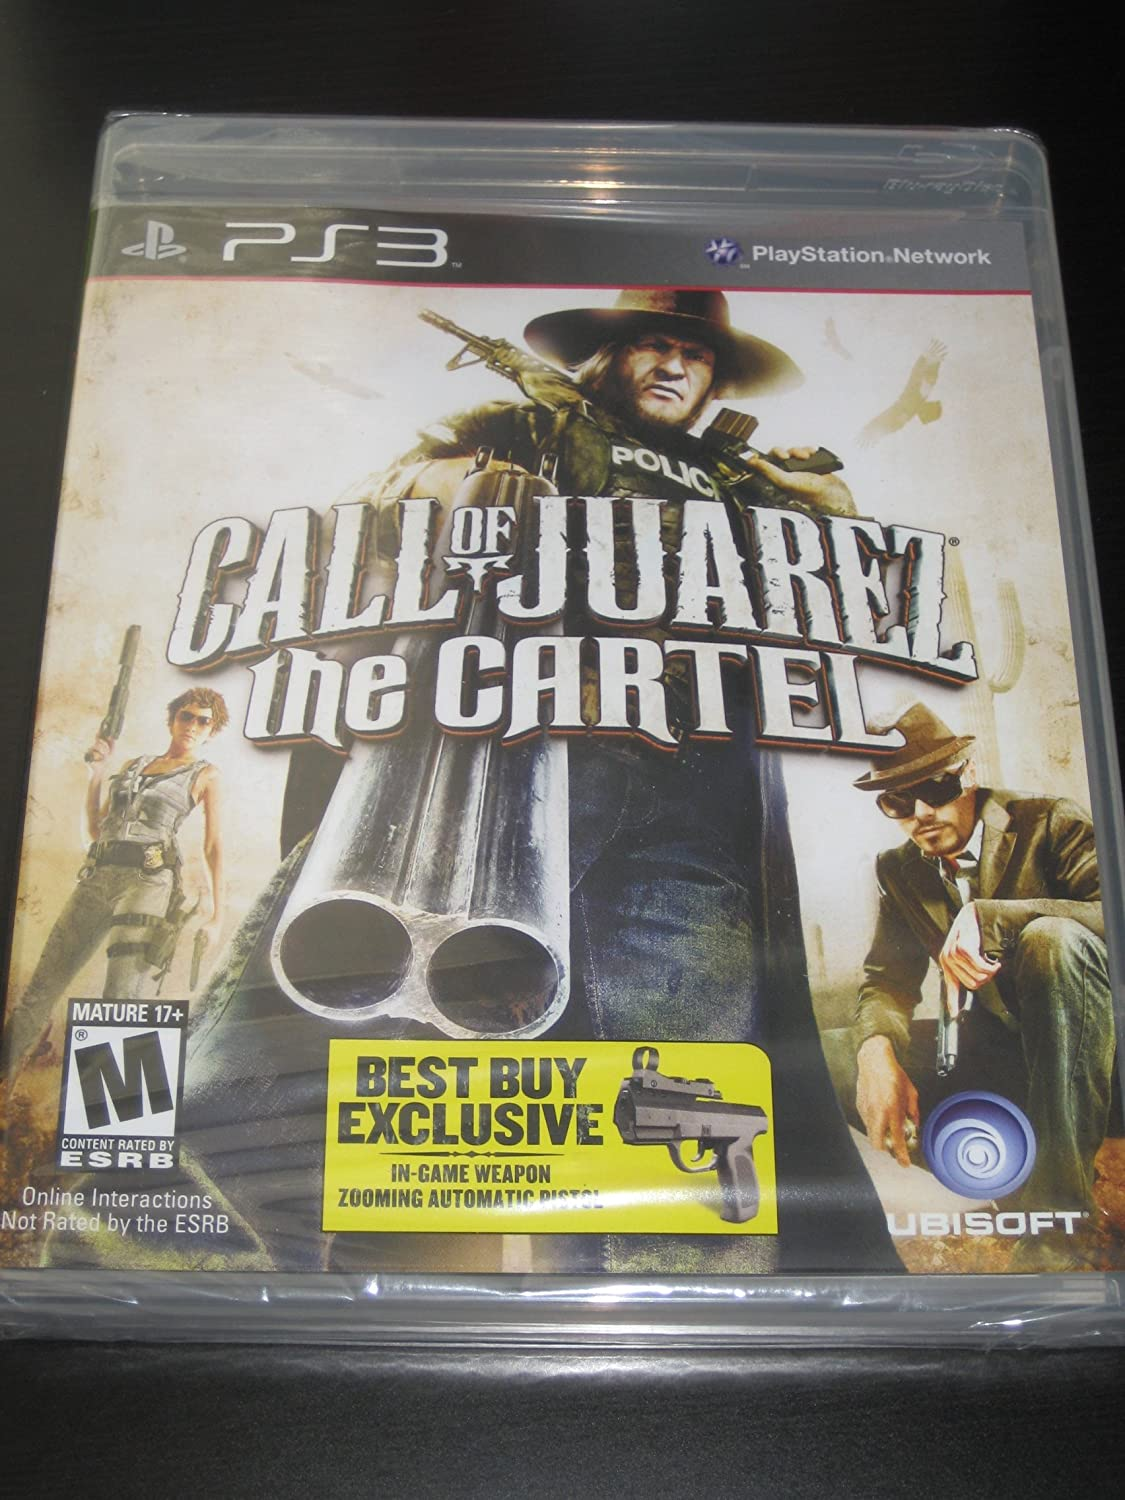 Amazon.com: Call of Juarez: The Cartel Best Buy Exclusive w ...